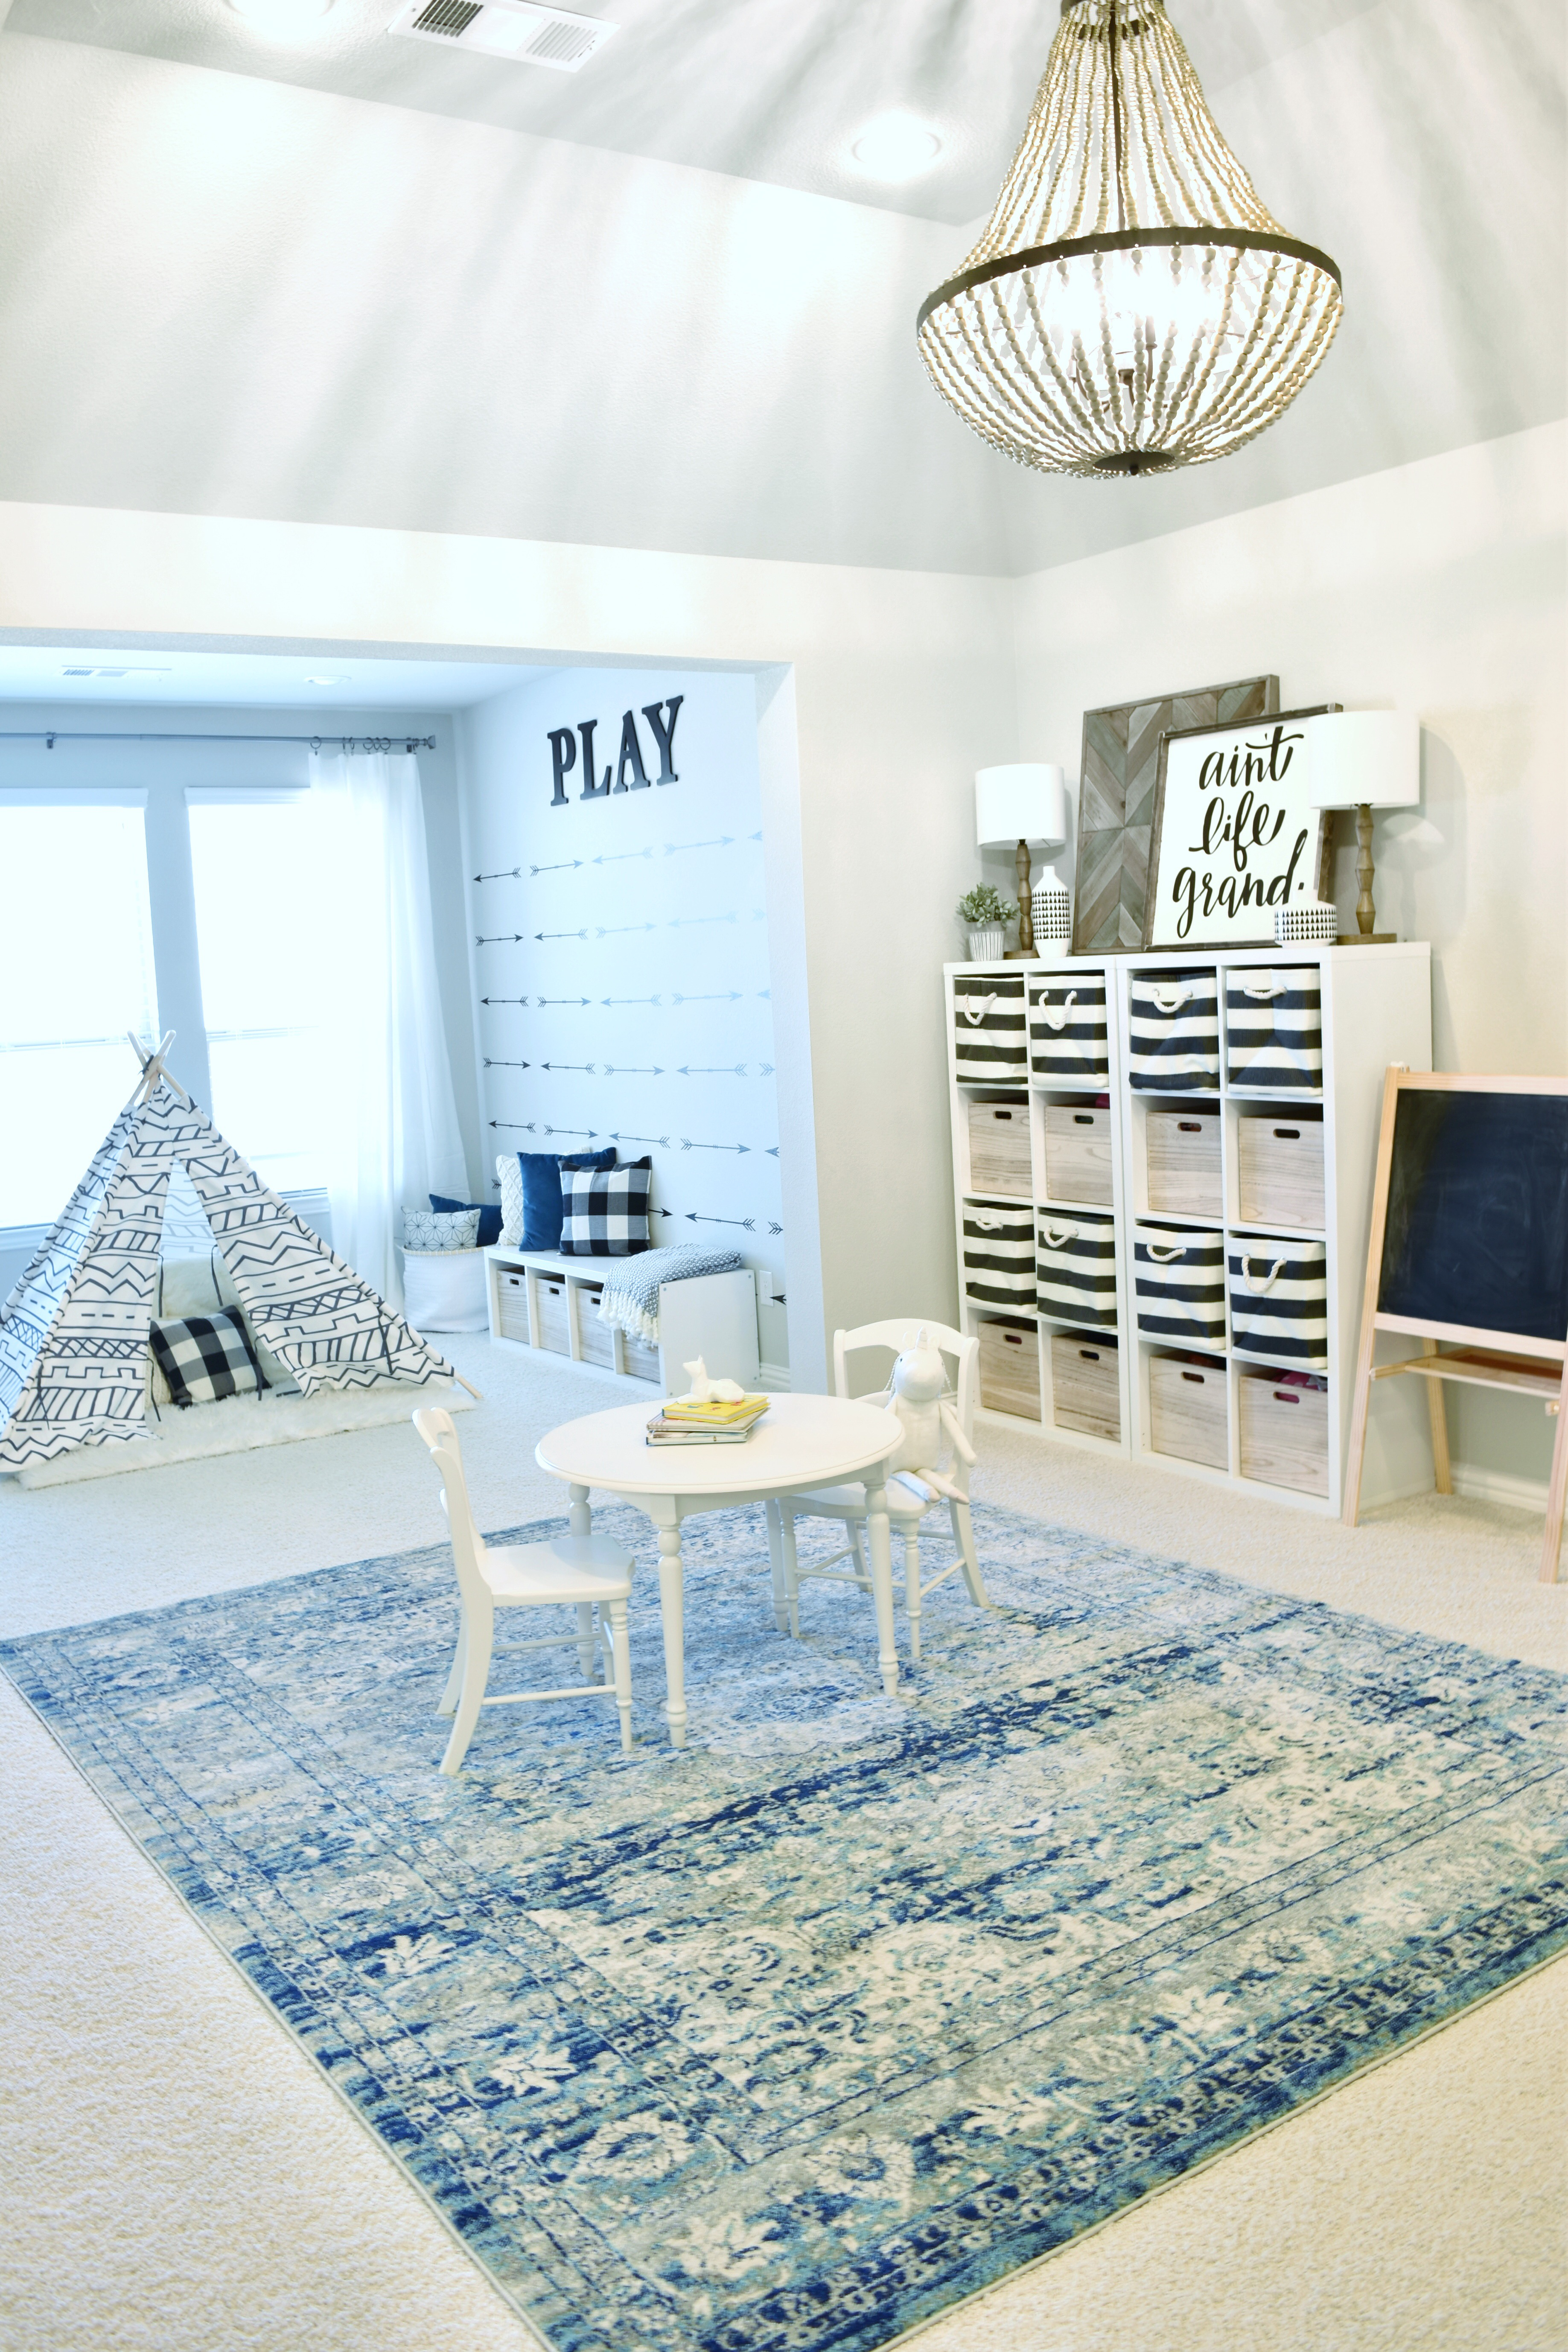 Picking out the perfect (affordable) rug - My Texas House